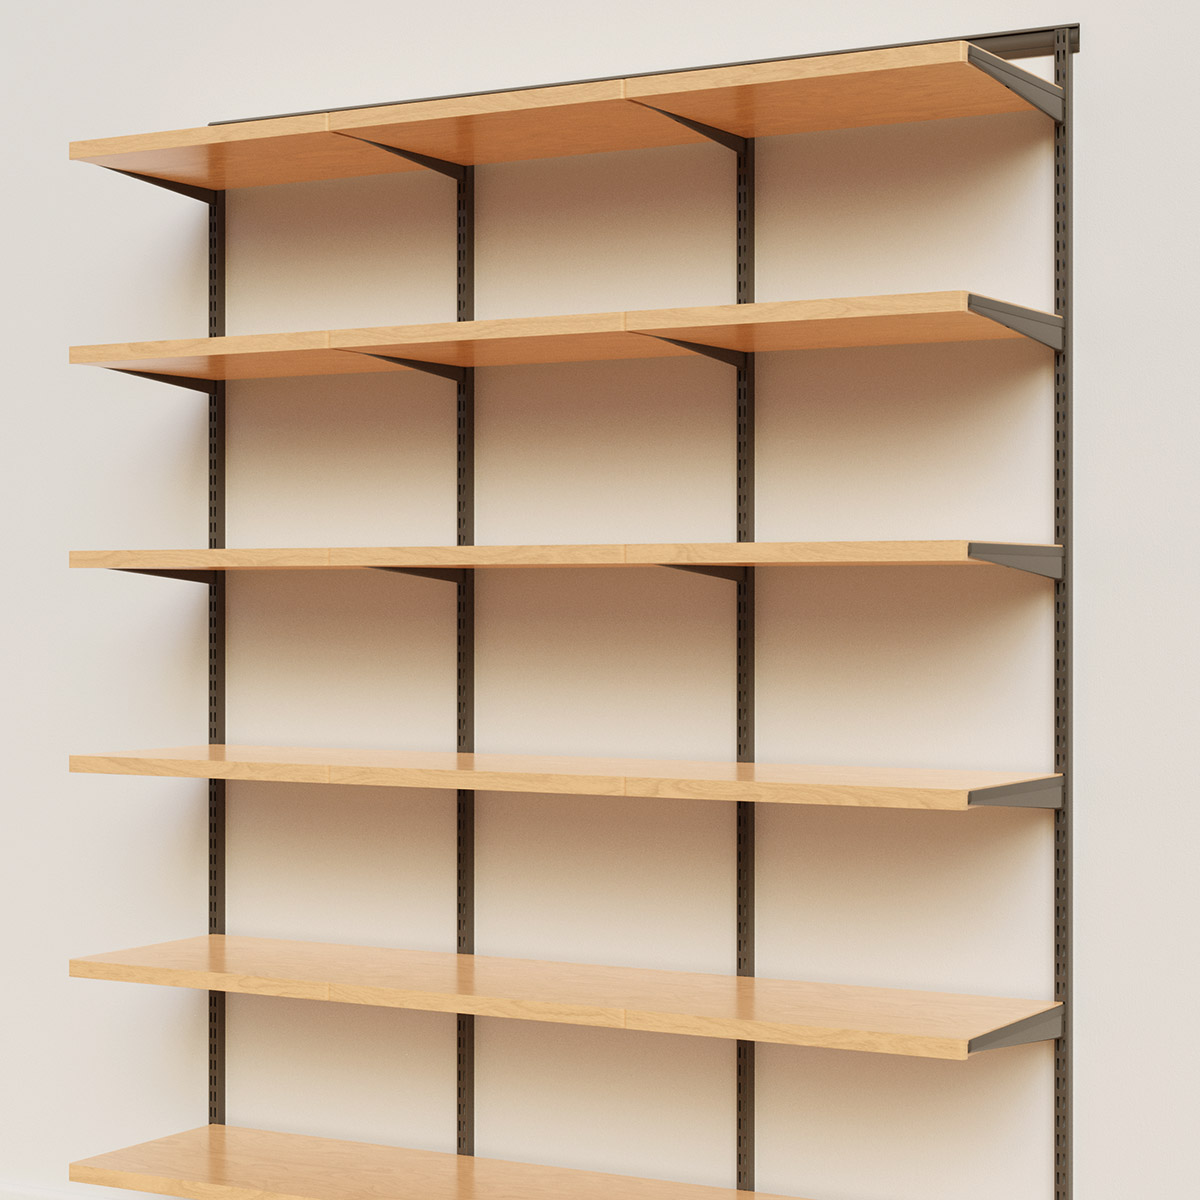 Elfa Décor 6' Graphite & Birch Basic Shelving Units for Anywhere